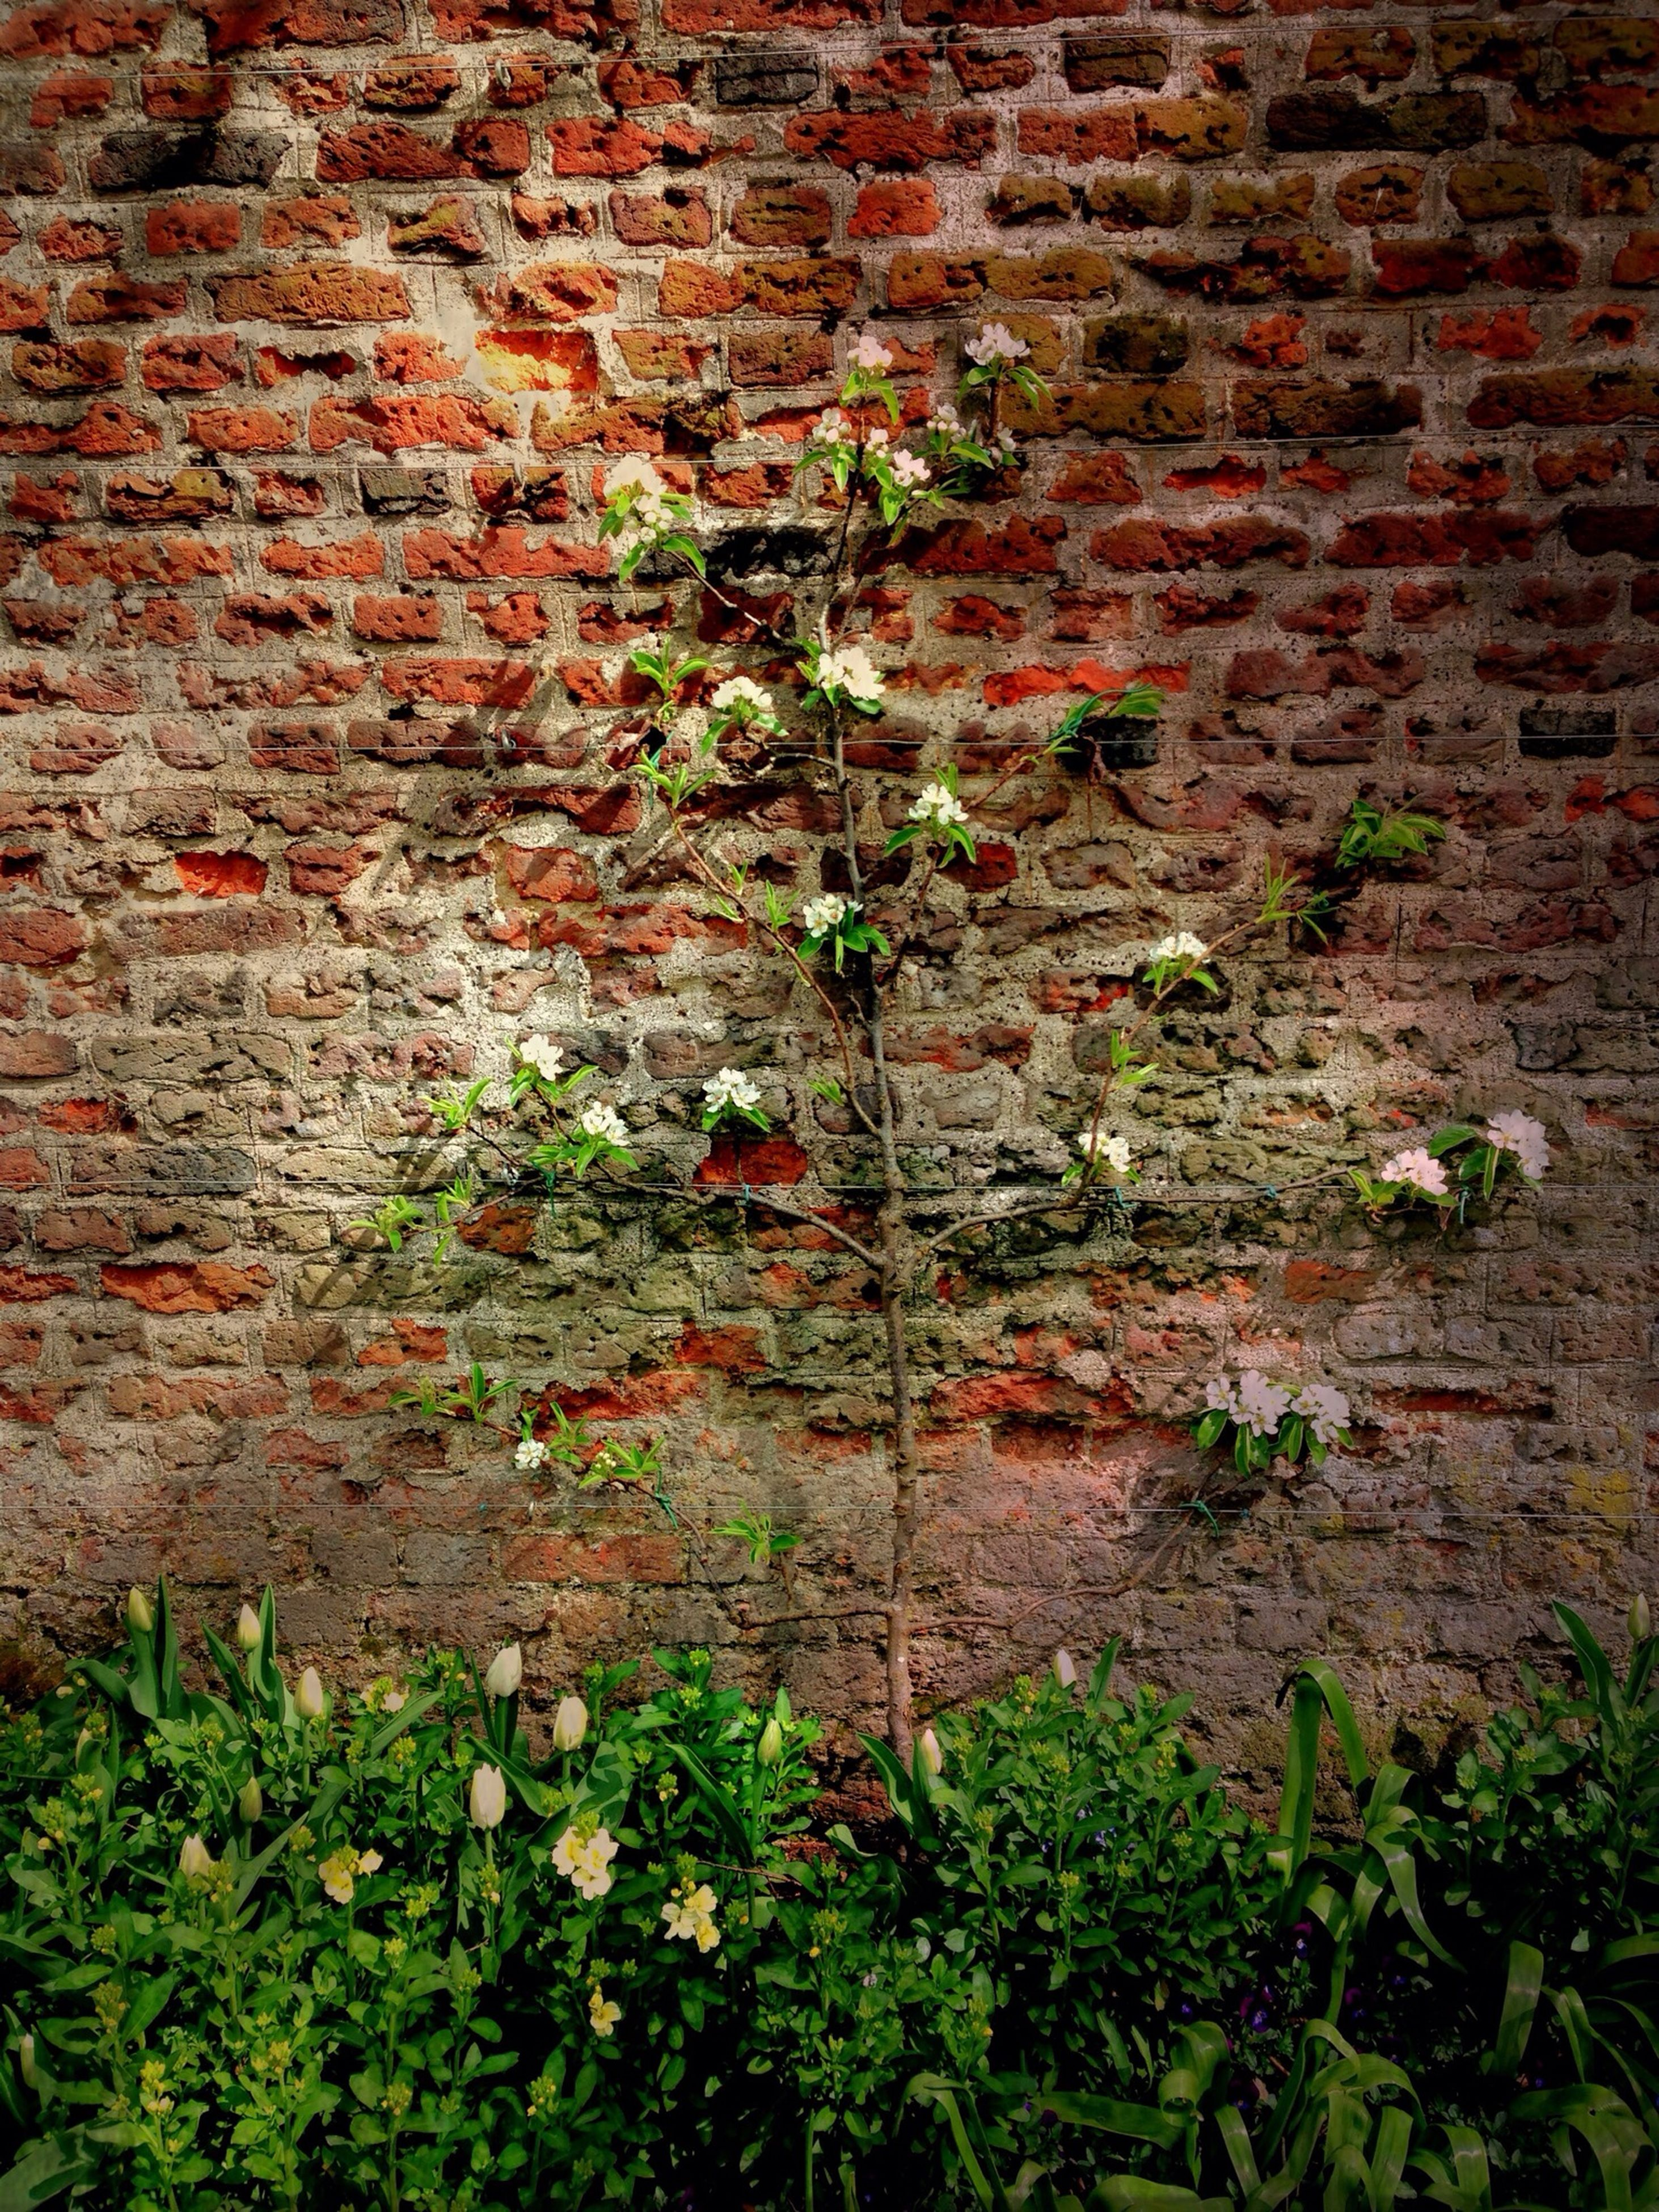 plant, growth, brick wall, wall - building feature, leaf, red, built structure, ivy, architecture, building exterior, stone wall, nature, day, outdoors, growing, no people, full frame, green color, wall, textured